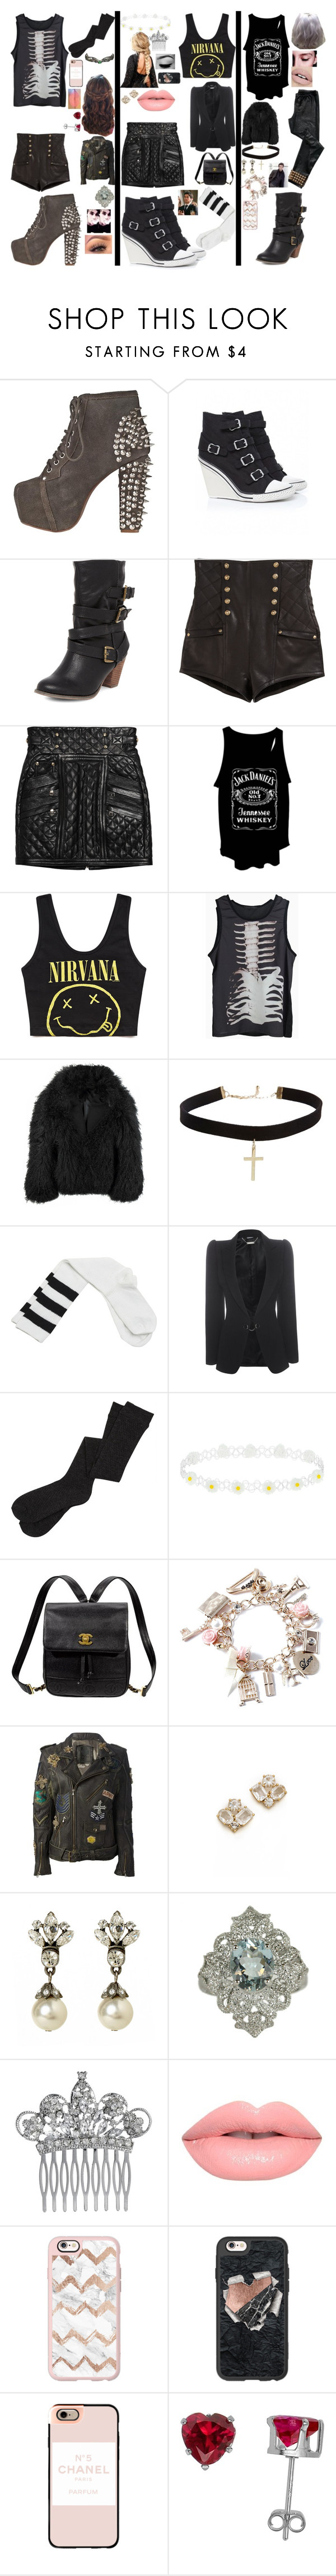 """Me my twin sis (centre) Steph and last morgana meeting our favs at comic con"" by keeliewatsonoffical on Polyvore featuring Jeffrey Campbell, Ash, Dorothy Perkins, Balmain, Forever 21, Diane Von Furstenberg, ASOS, Wet Seal, Alexander McQueen and Miss Selfridge"